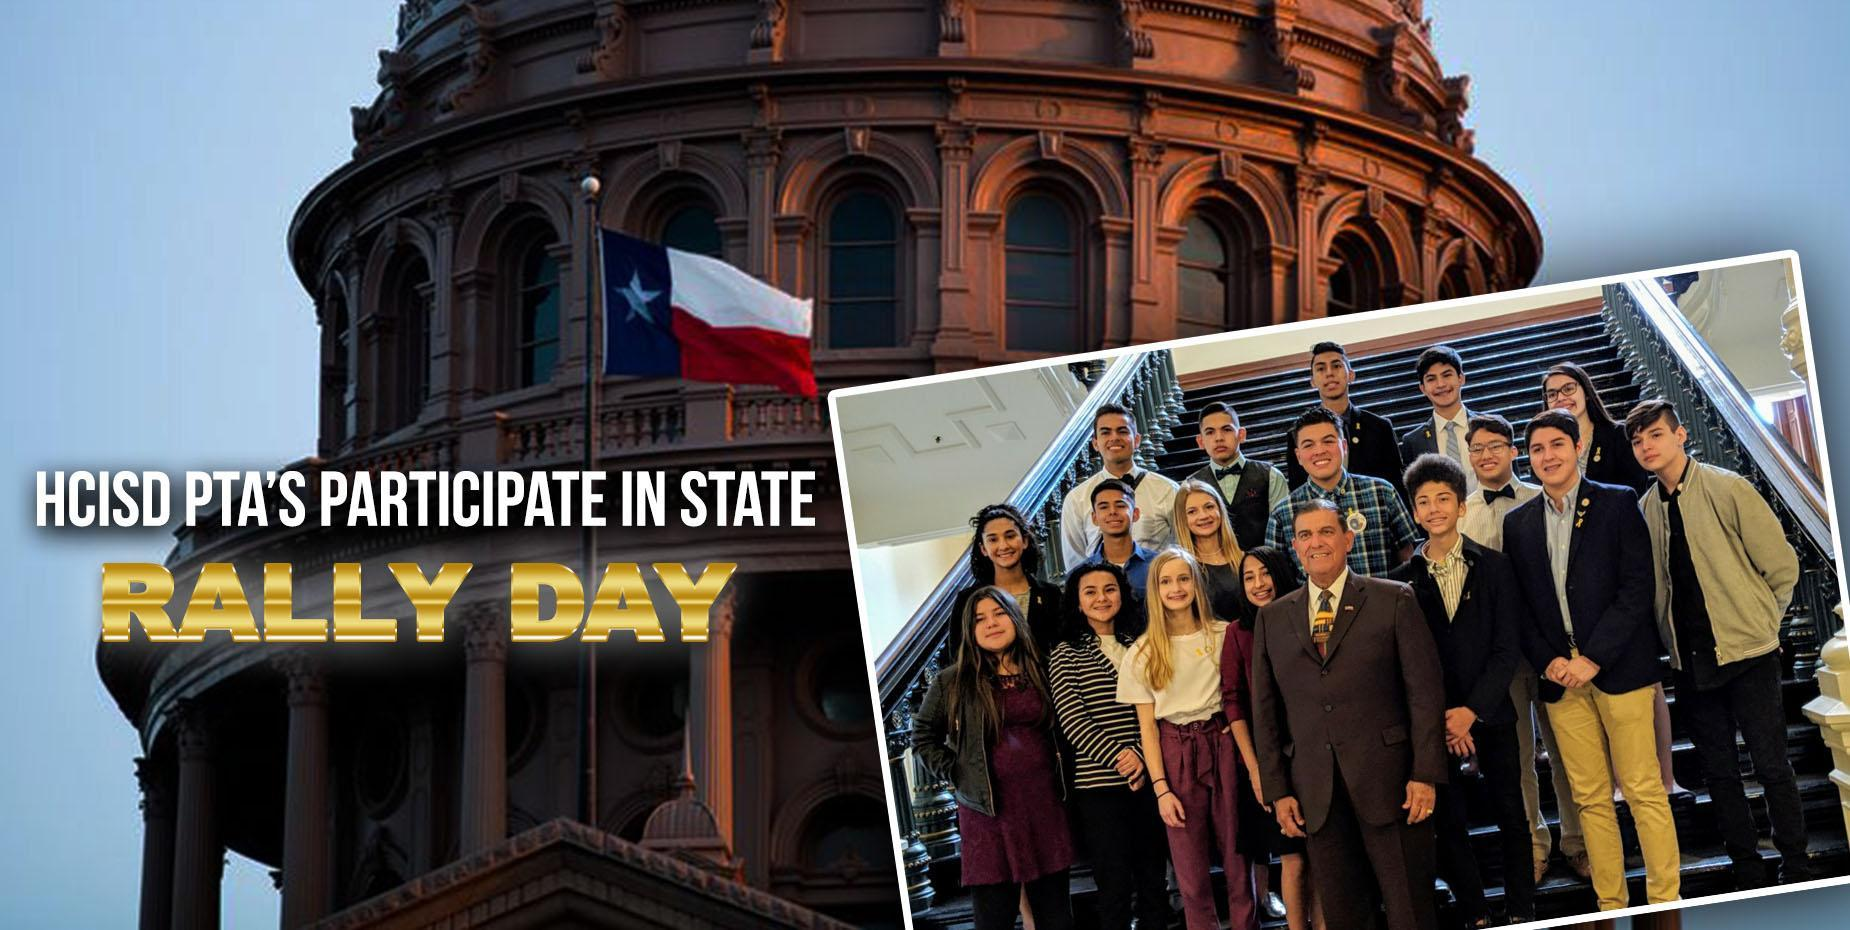 HCISD PTA'S Participate in State Rally Day